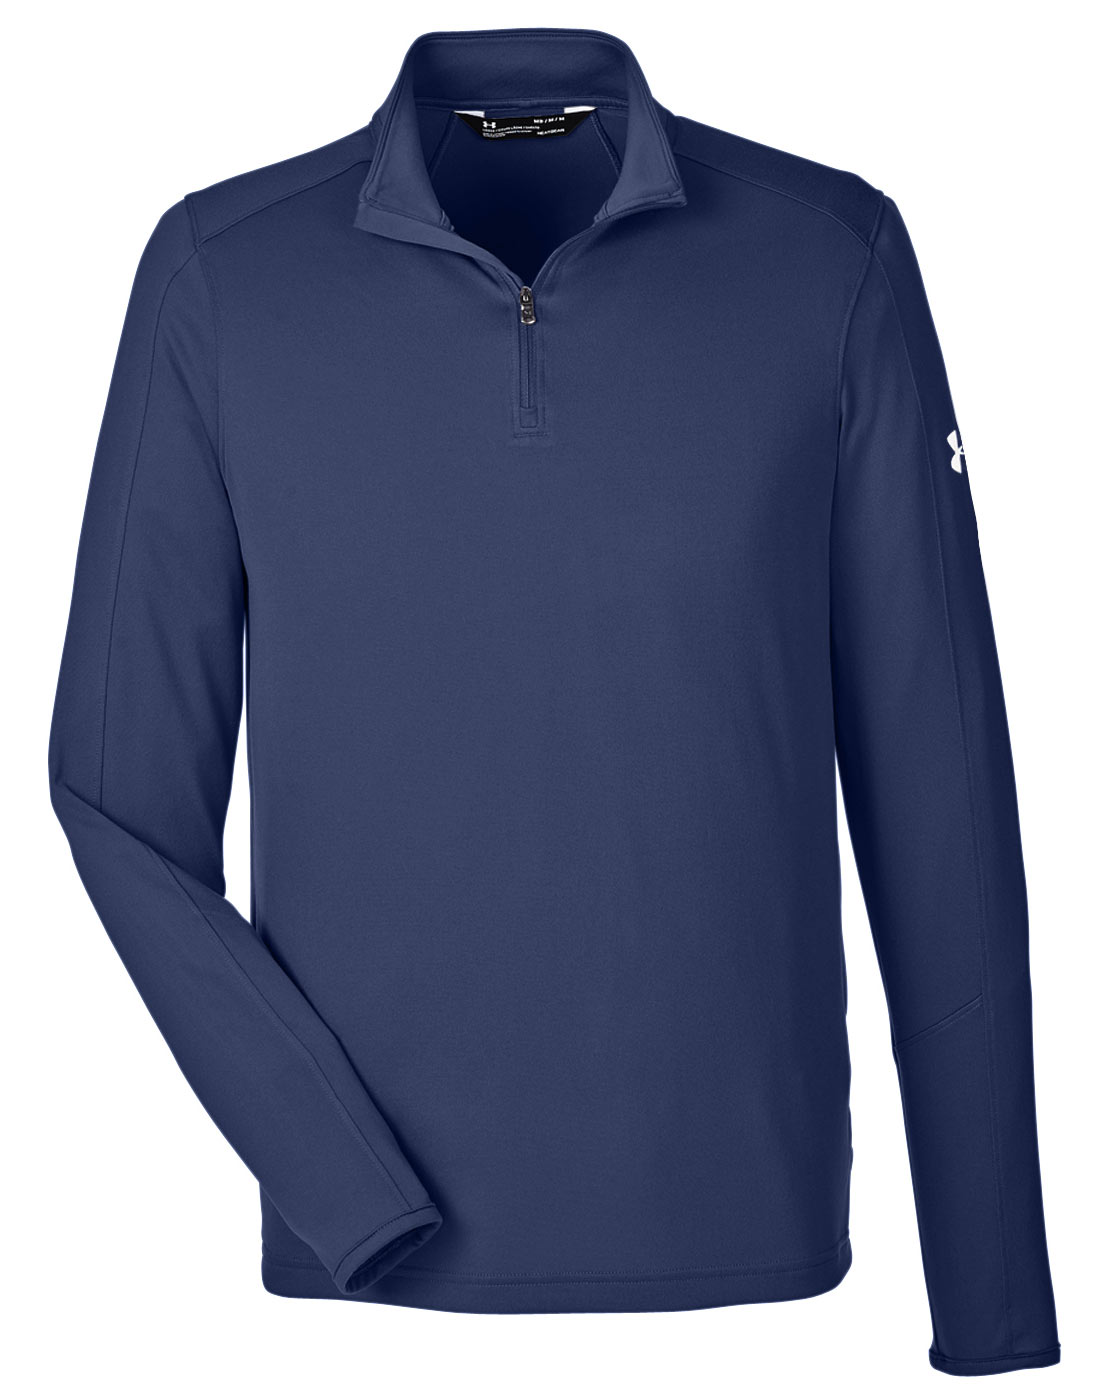 Under Armour Mens UA Tech™ Quarter Zip